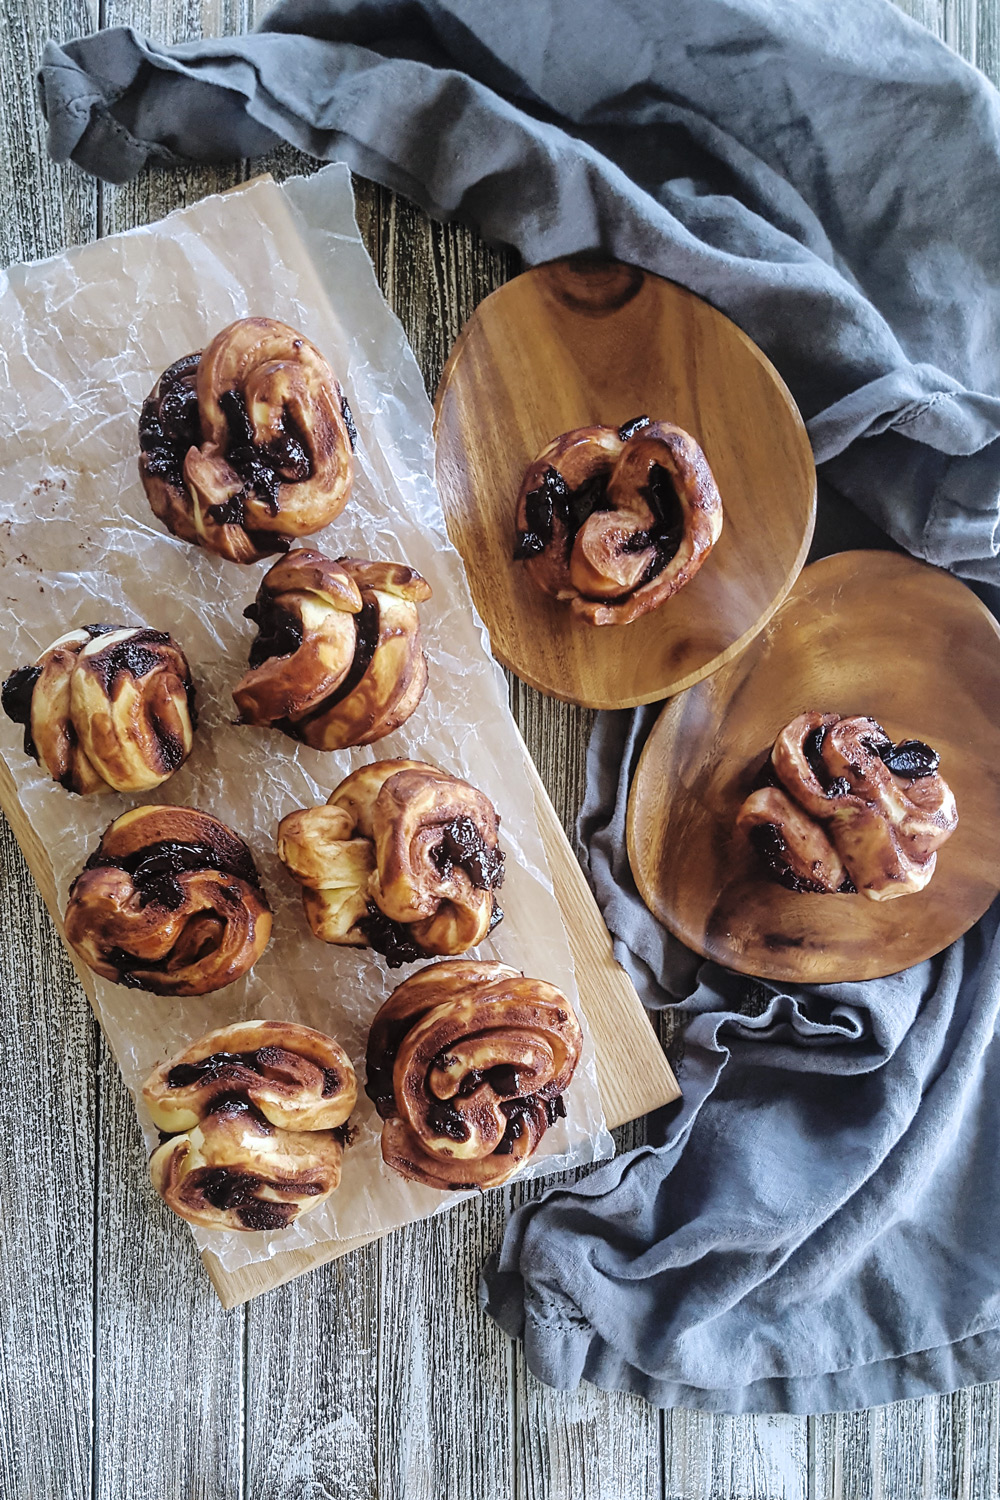 An assortment of Cherry Chocolate Babka Pull Apart Muffins on a wooden tray and two wooden serving plates with a grey napkin.